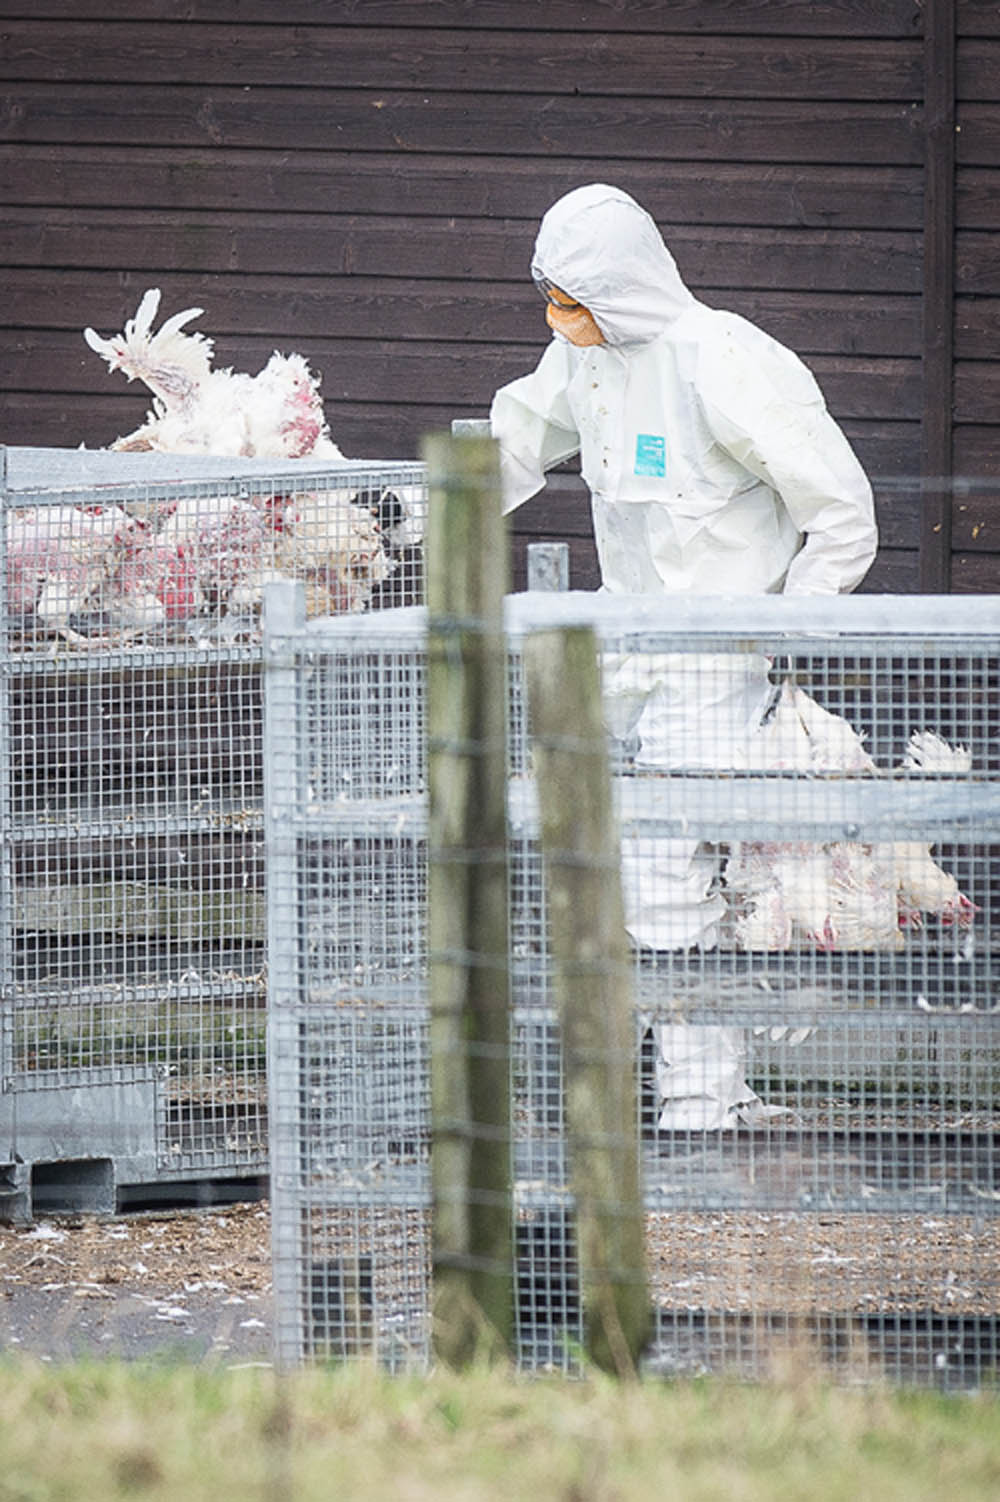 The birds being loaded into cages